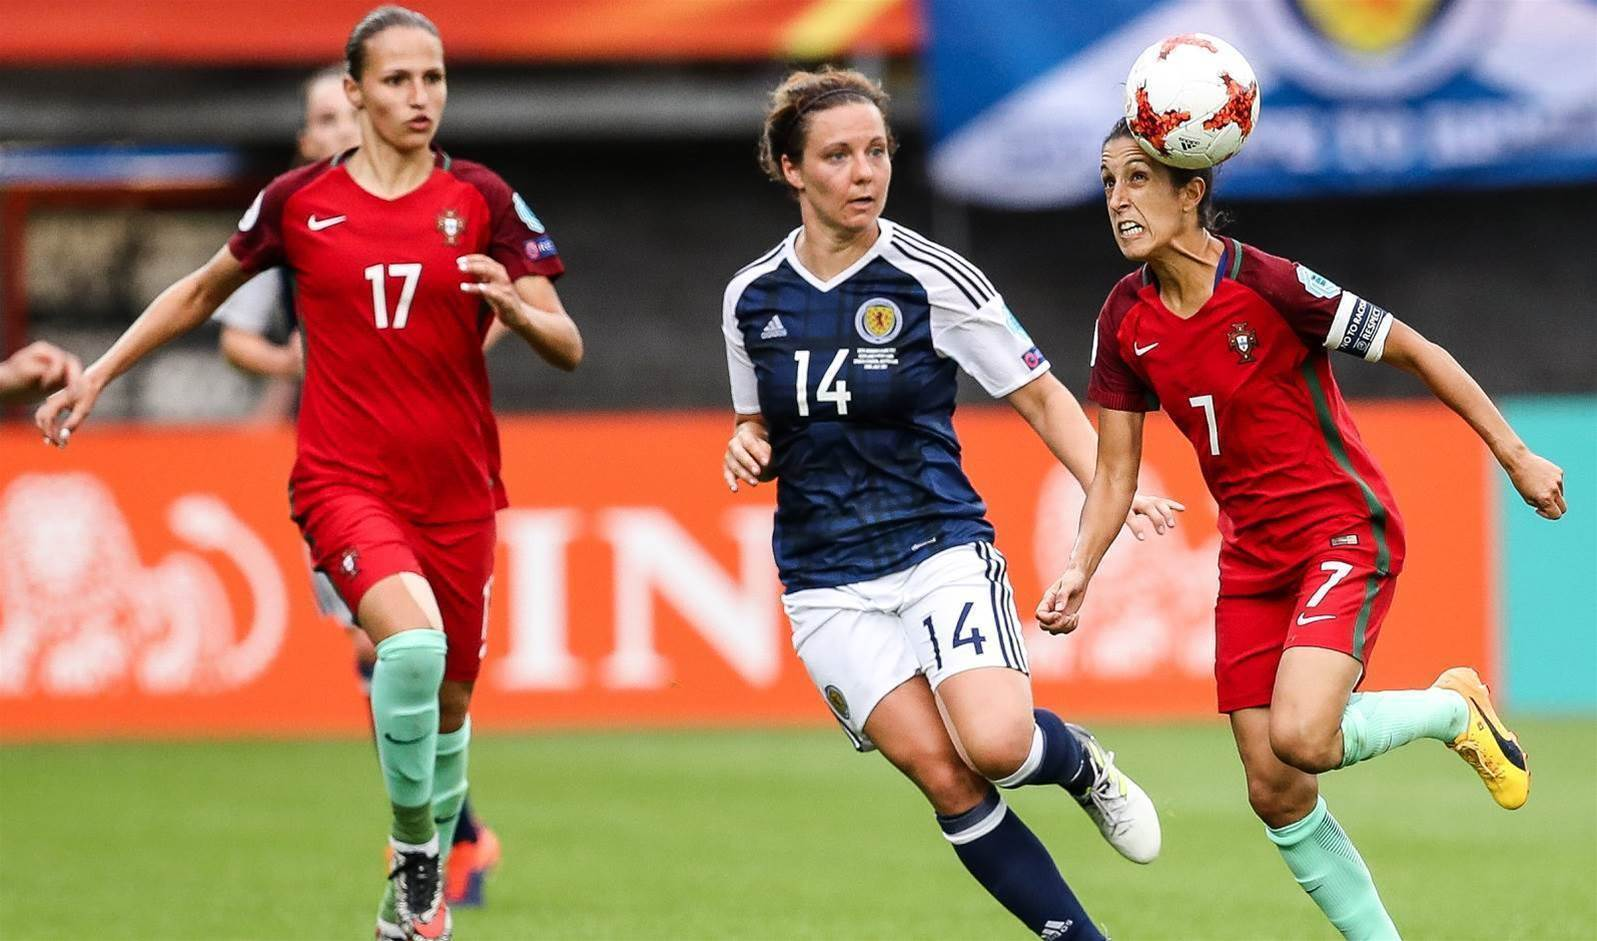 Canberra United signs Scotland skipper